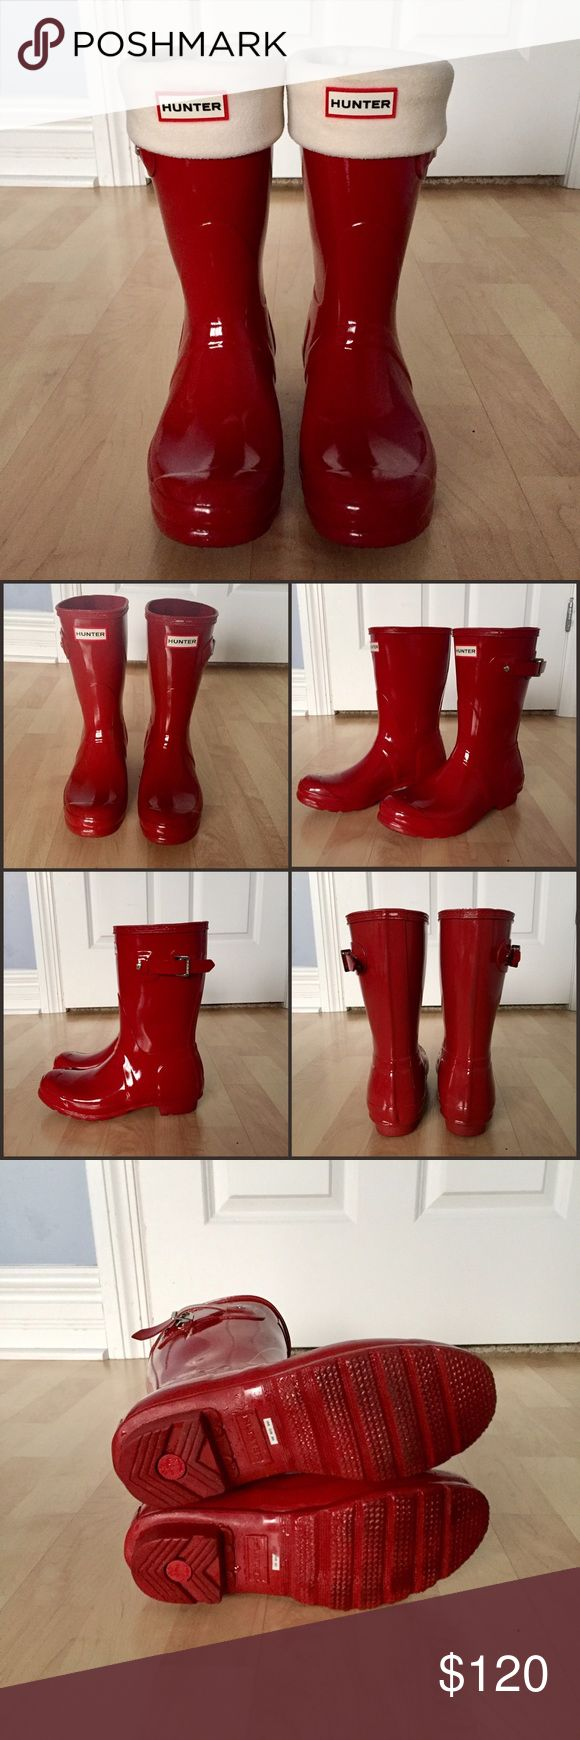 Hunter Original Short Gloss Rain Boots Like new, only worn once. Shiny, red, short Hunter rain boots with silver buckle. These have only been worn once, there are no flaws. *Hunter socks not included, just for display* Comment with any questions! ☔️ Hunter Boots Shoes Winter & Rain Boots